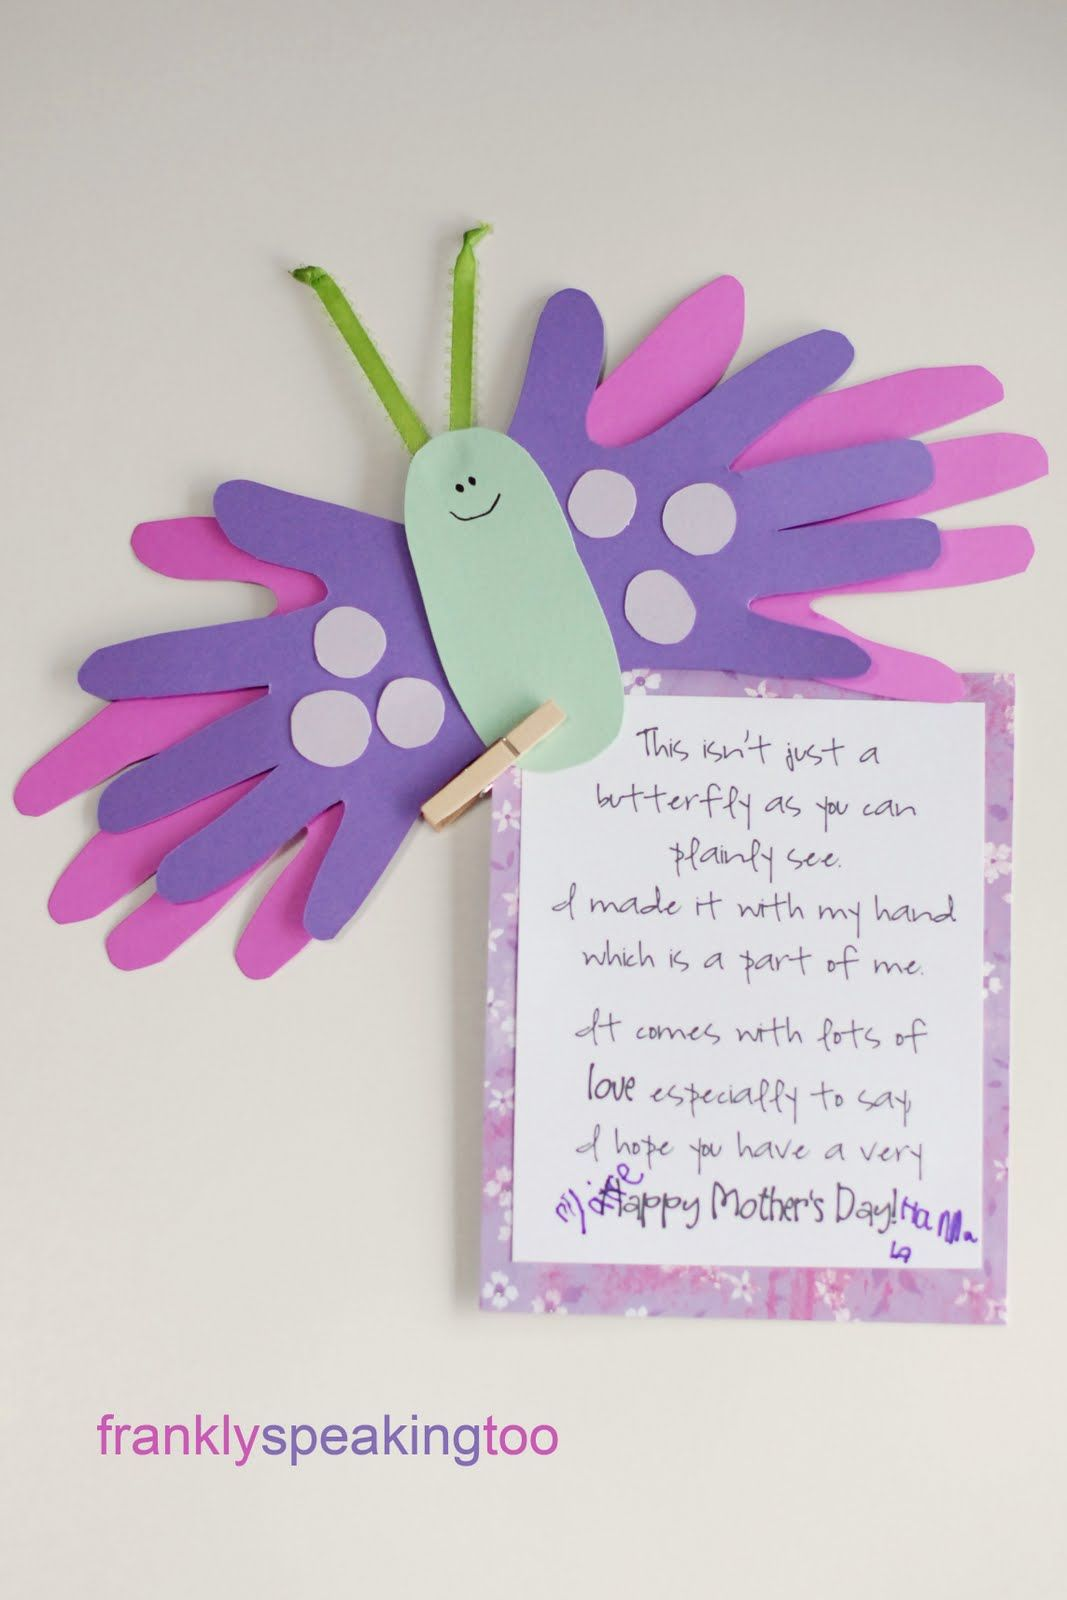 How to make a gift to mom with their own hands. Ideas for crafts for mothers day